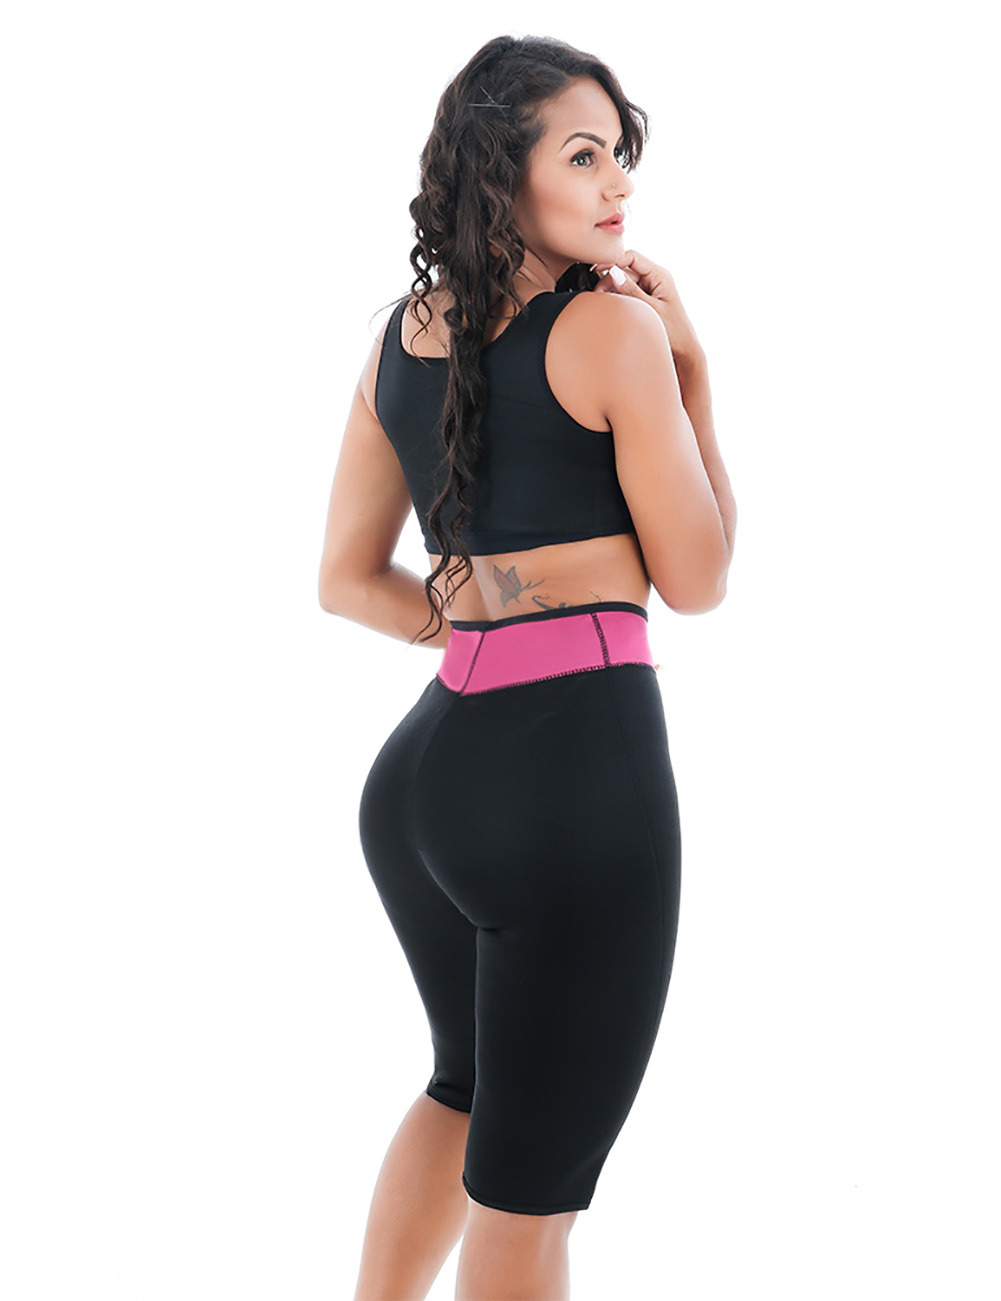 //cdn.affectcloud.com/feelingirldress/upload/imgs/Shapewear/Sweat_Wasit_Trainer/LB12777/LB12777-201912255e031270d444b.jpg